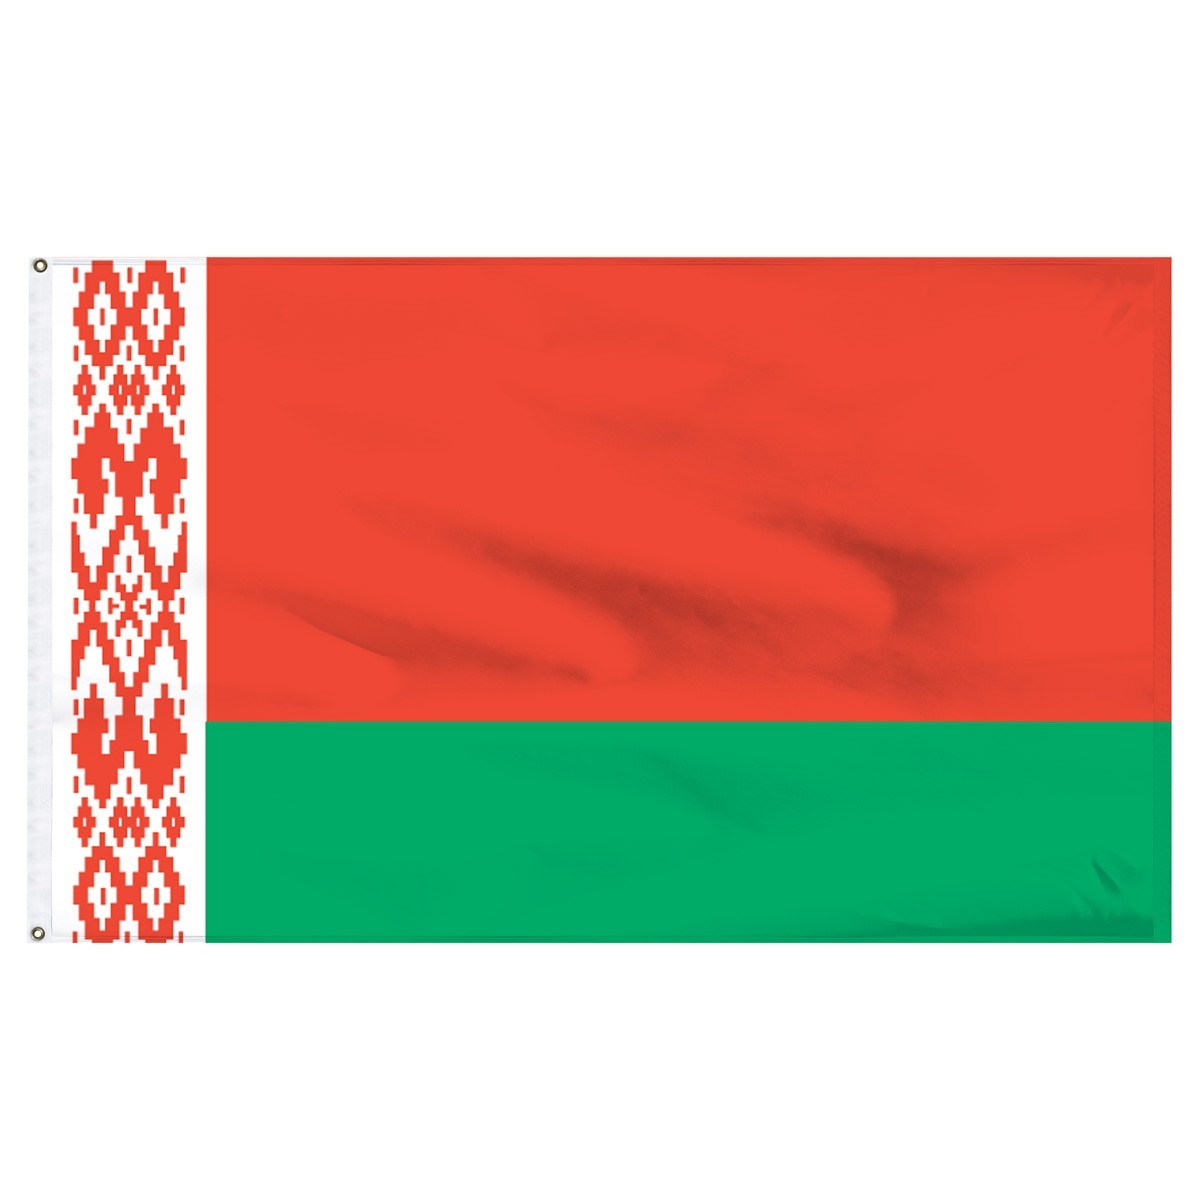 Belarus 5' x 8' Outdoor Nylon Flag